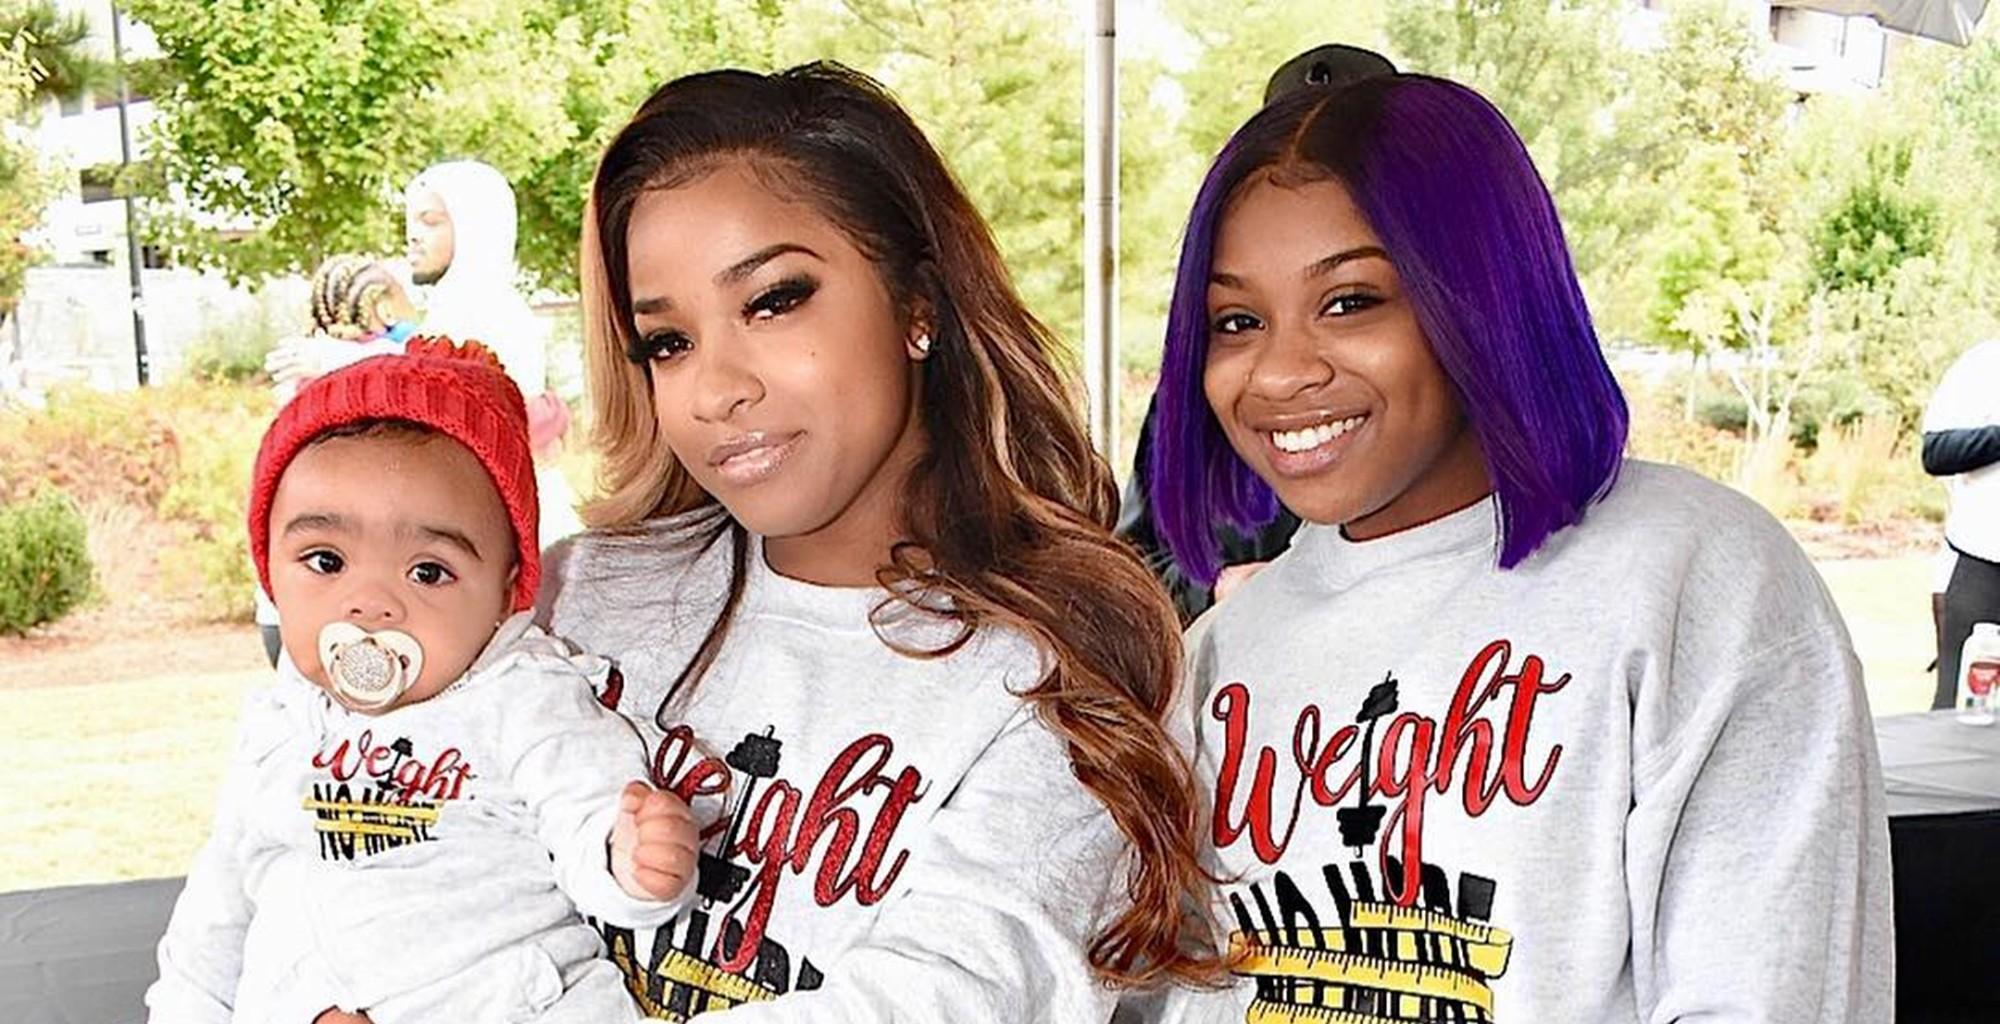 Toya Wright Takes Part In Another 'Weight No More' 5K Walk/Run Event For Fighting Obesity Together With Reginae Carter And Robert Rushing - Check Out The Photo